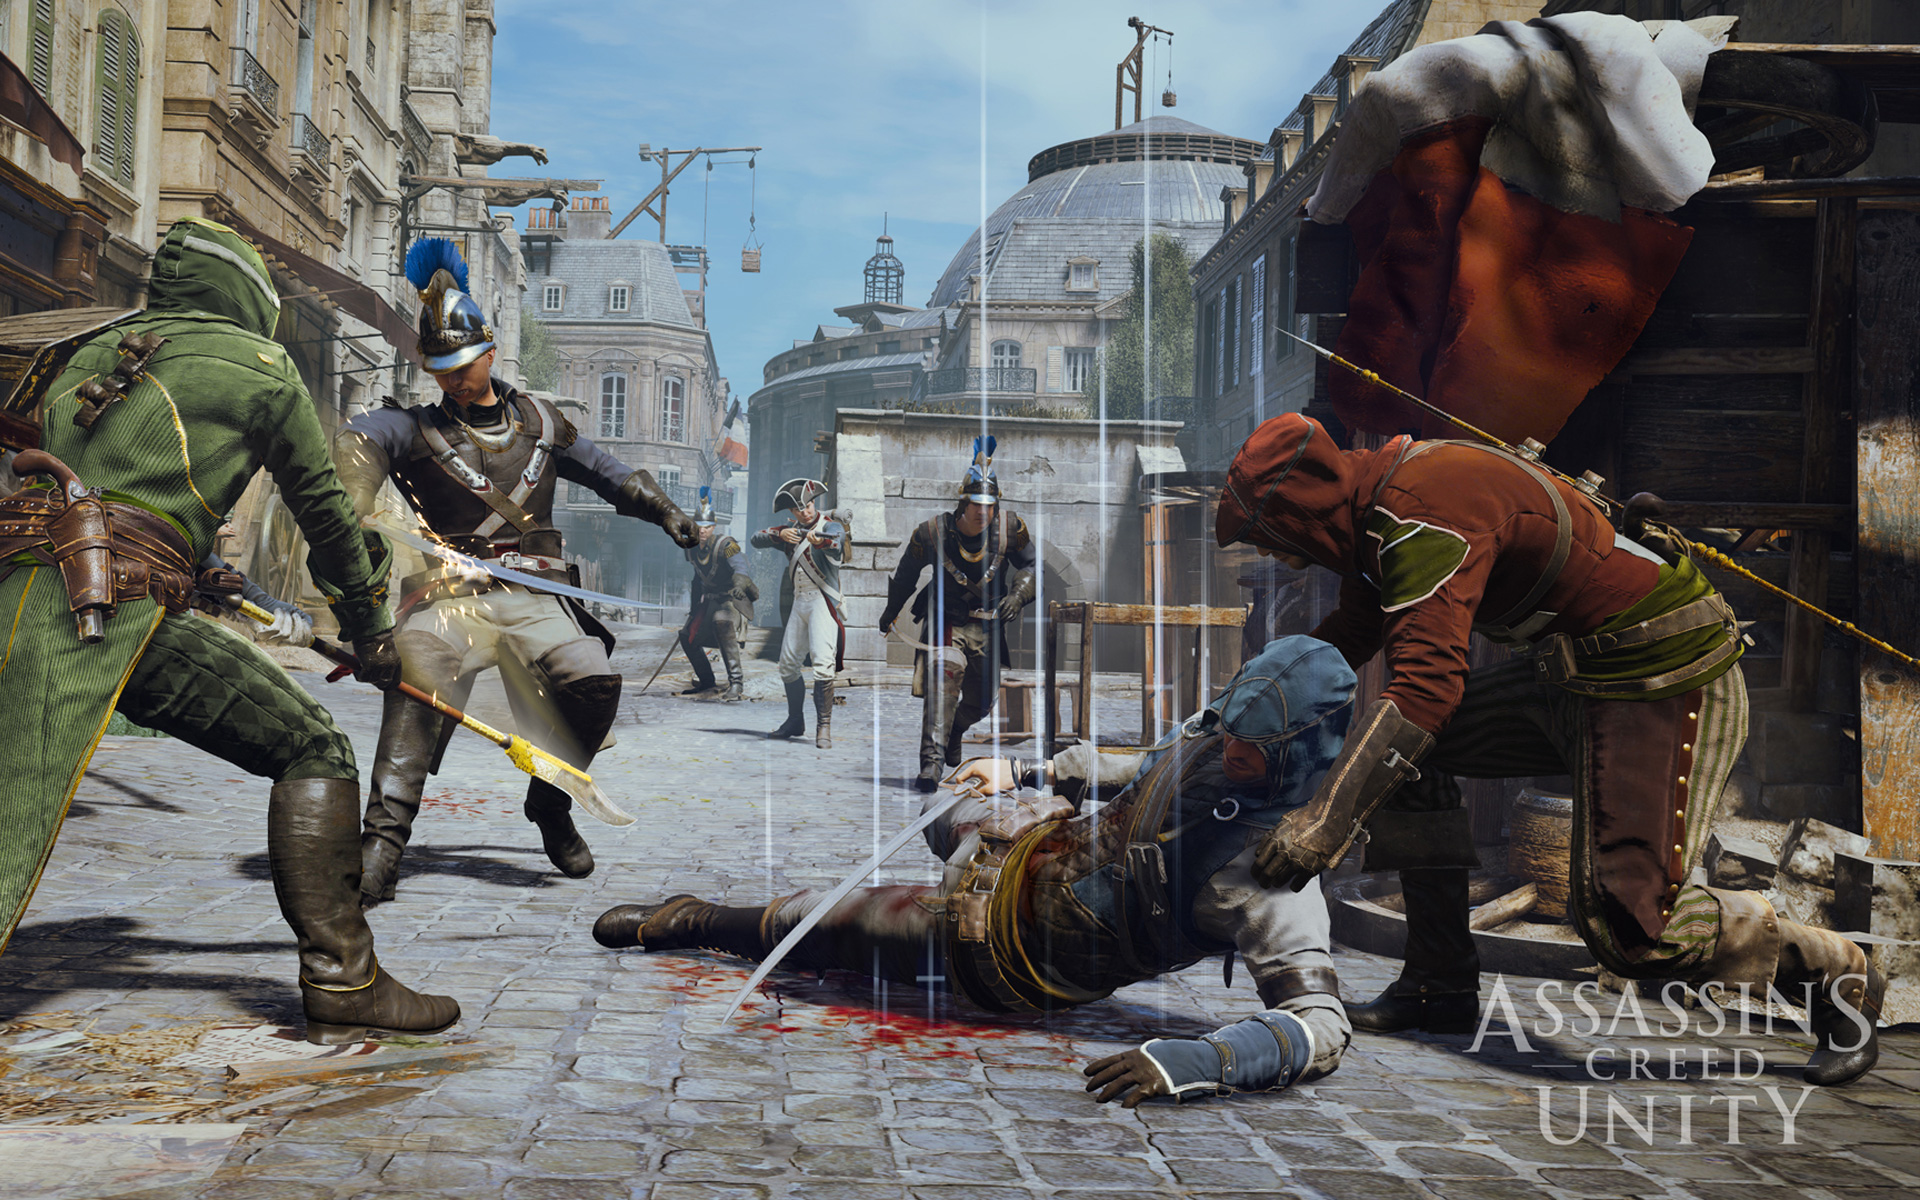 Assassin's Creed Unity HD Wallpapers 20